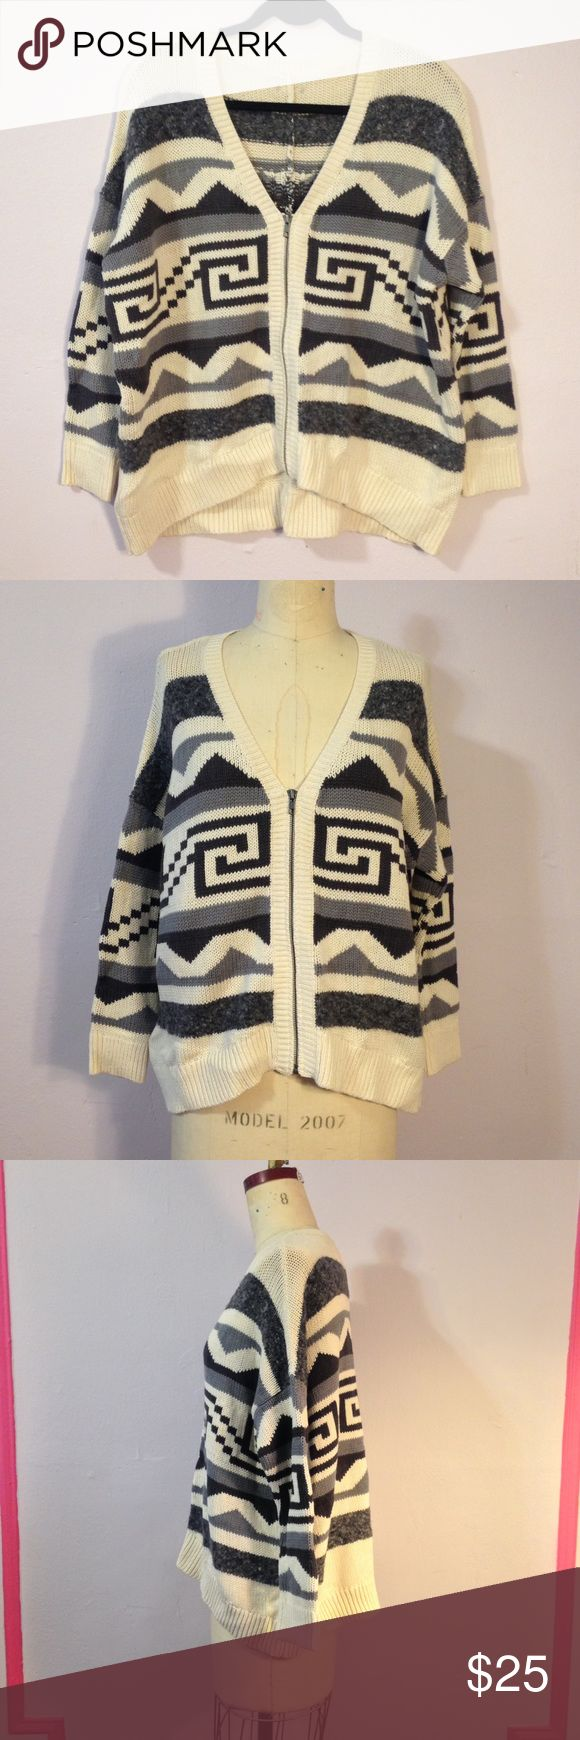 Urban Outfitters Aztec Zip Up Sweater Jacket S/M/L Cute and comfy oversized zip up sweater from Urban Outfitters. Cute Aztec jacquard design! Missing Label. Never worn. Best fits a size Medium or Large. Looks great on a size small as a baggy look. Kimchi Blue Sweaters Cardigans